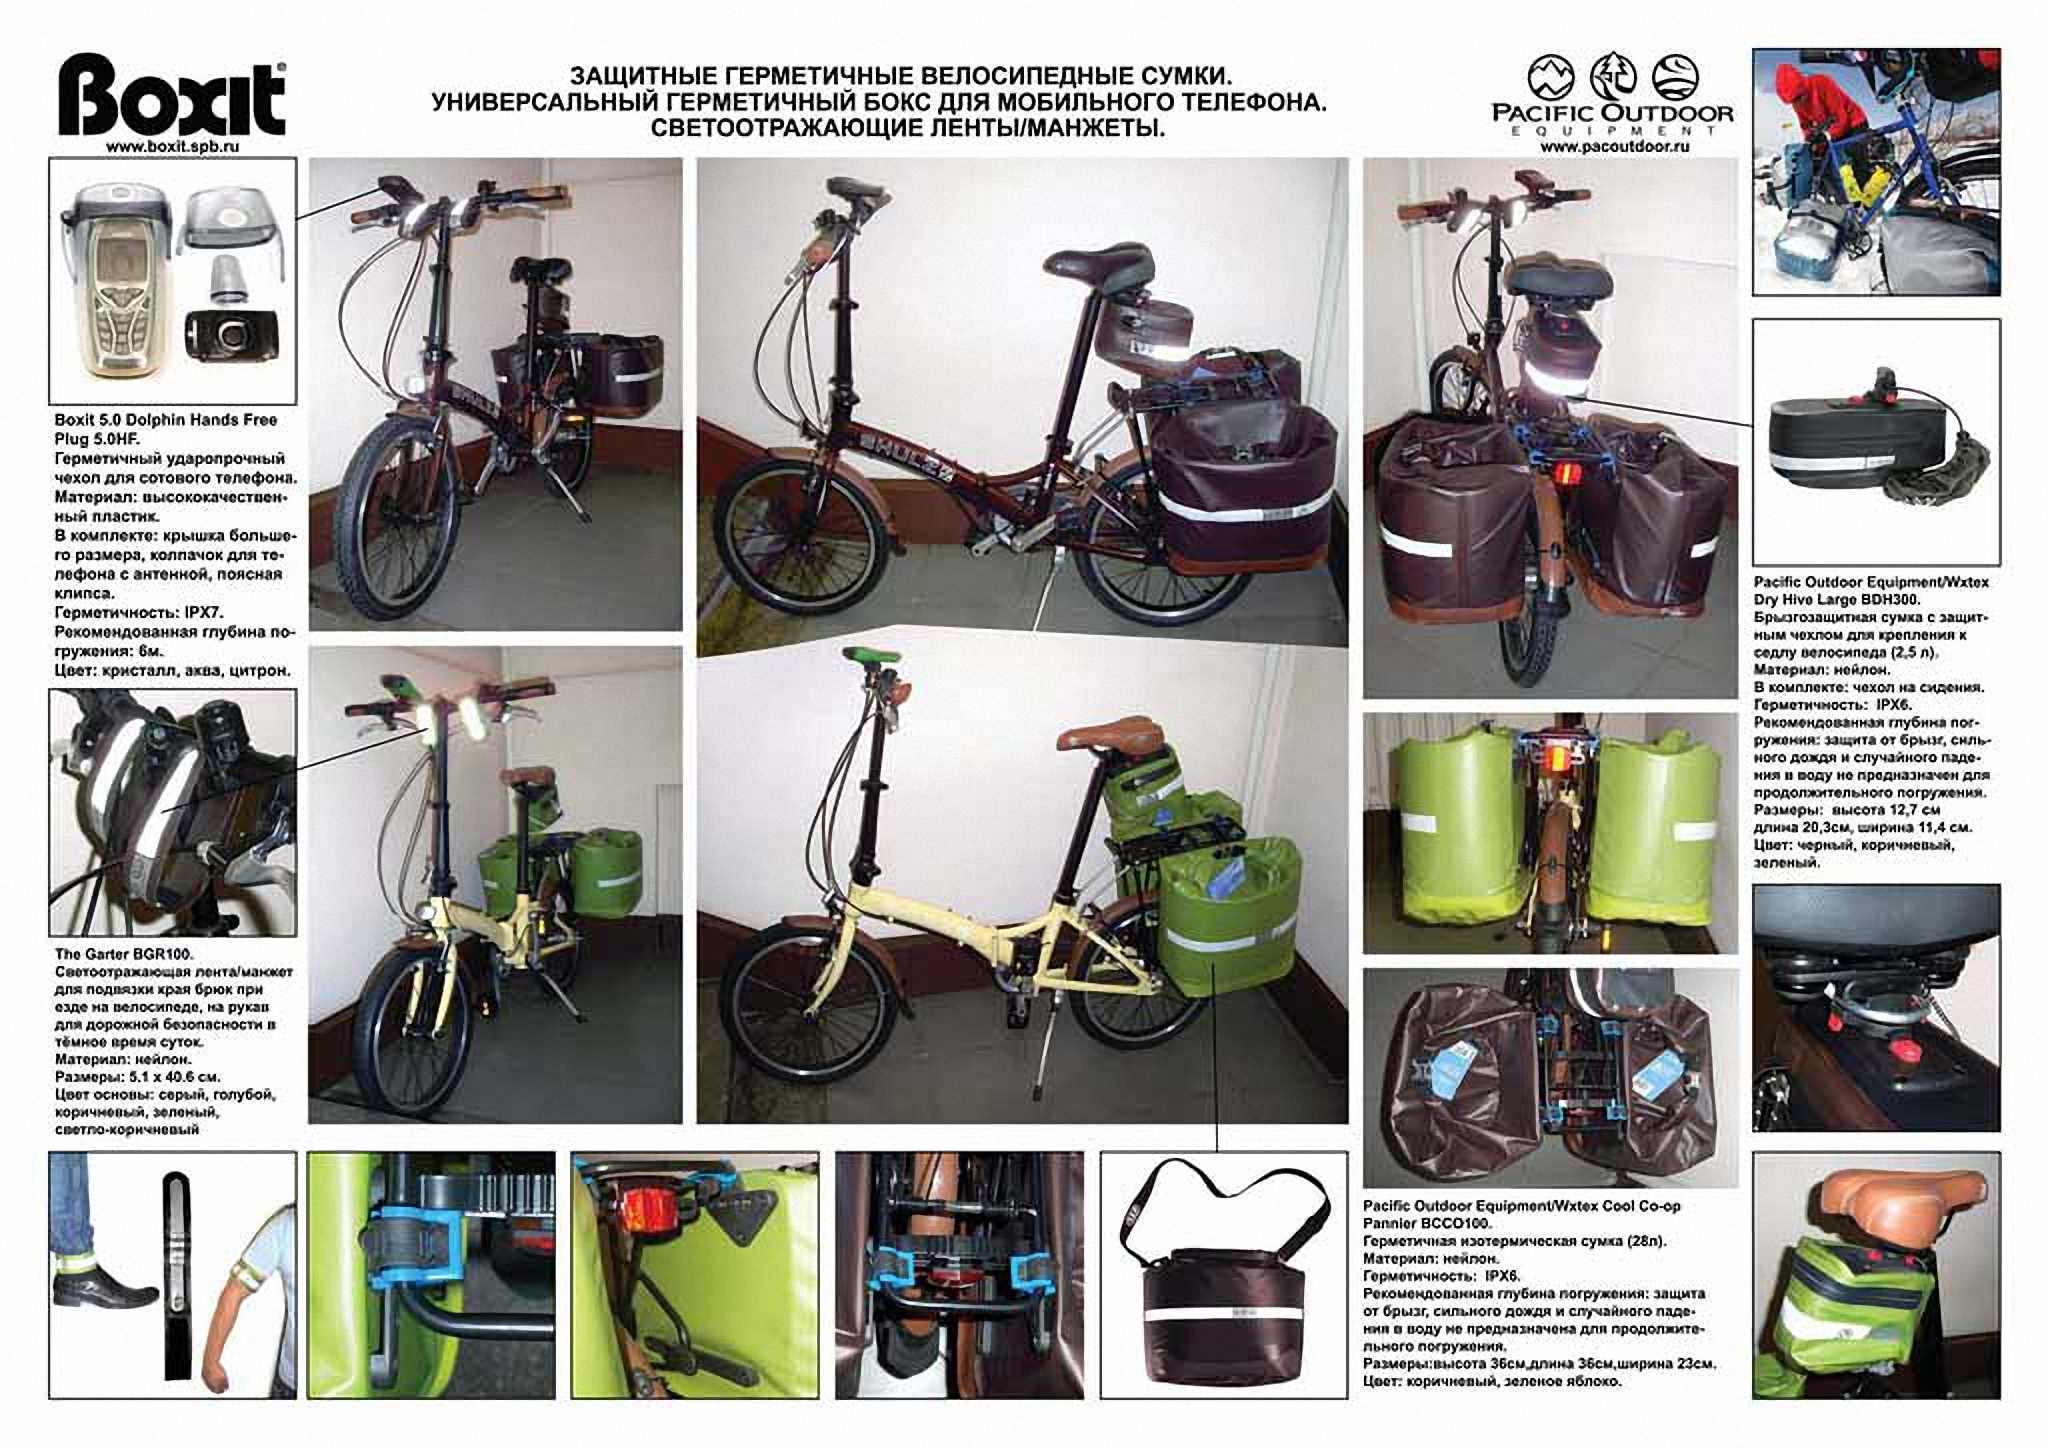 Водонепроницаемая сумка Pacific Outdoor Equipment / Wxtex Co-op Pannier Apple - 28L. Фото 2